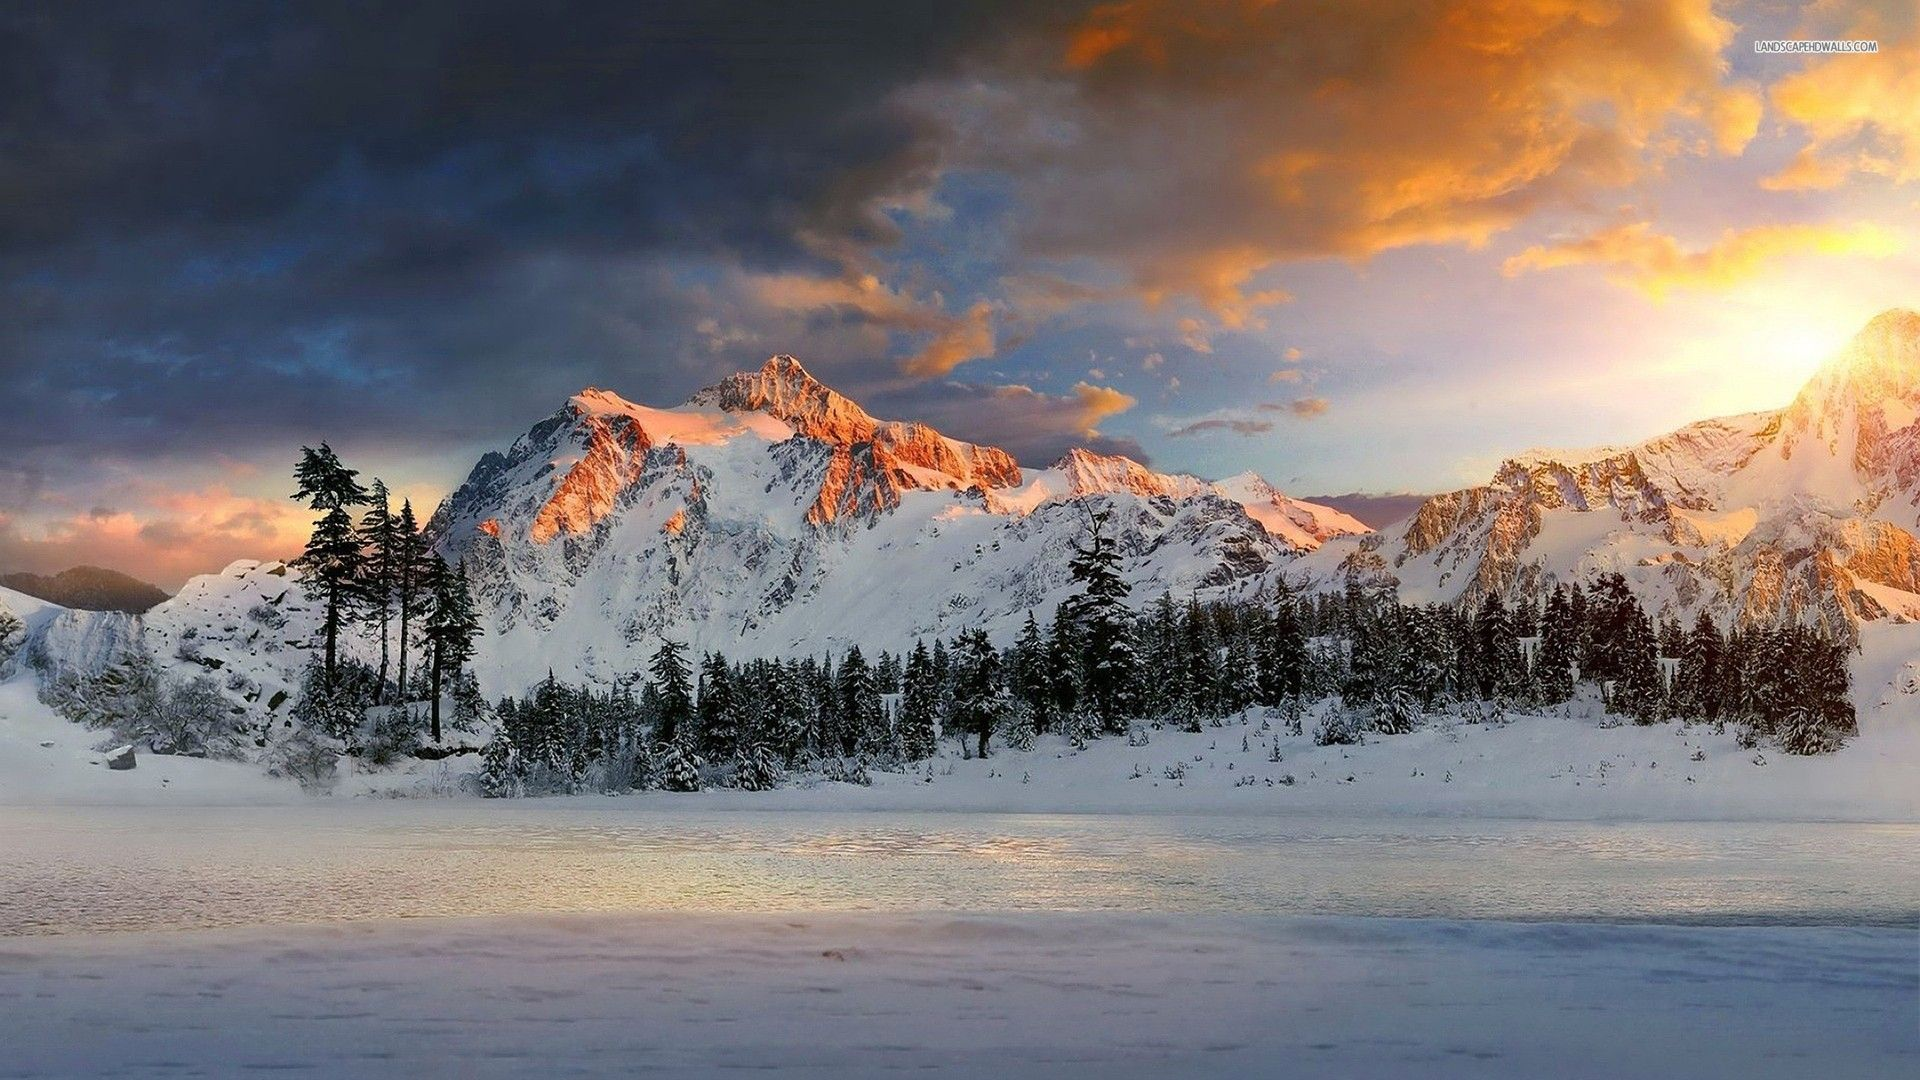 Snow Mountains Sunset Wallpaper Snowy Mountain Field